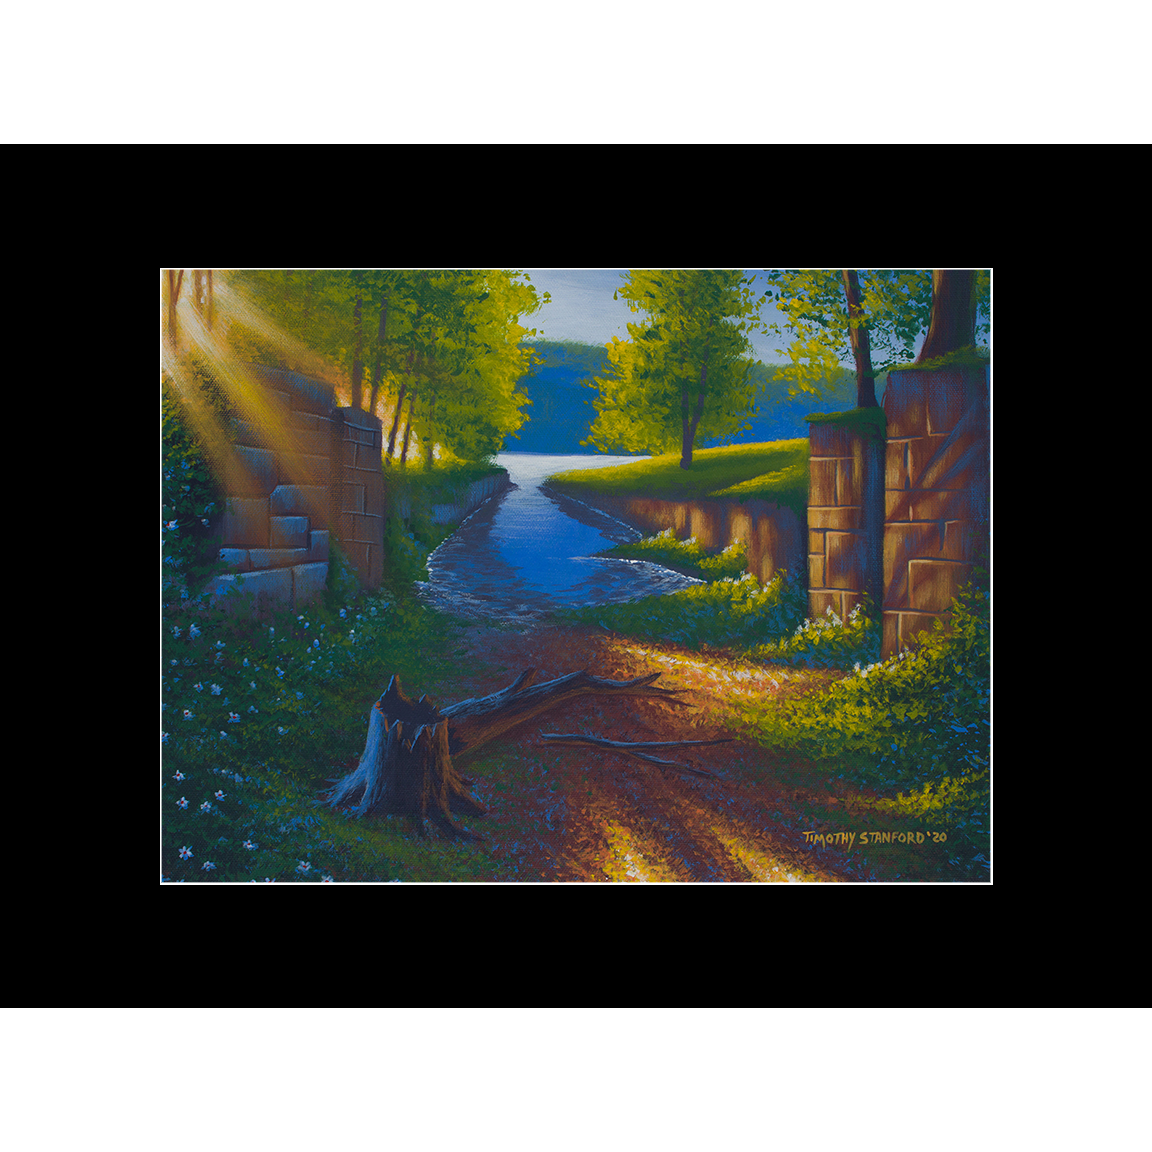 """Fine art matted print of Timothy Stanford's original acrylic painting """"Nature's Outlet"""""""